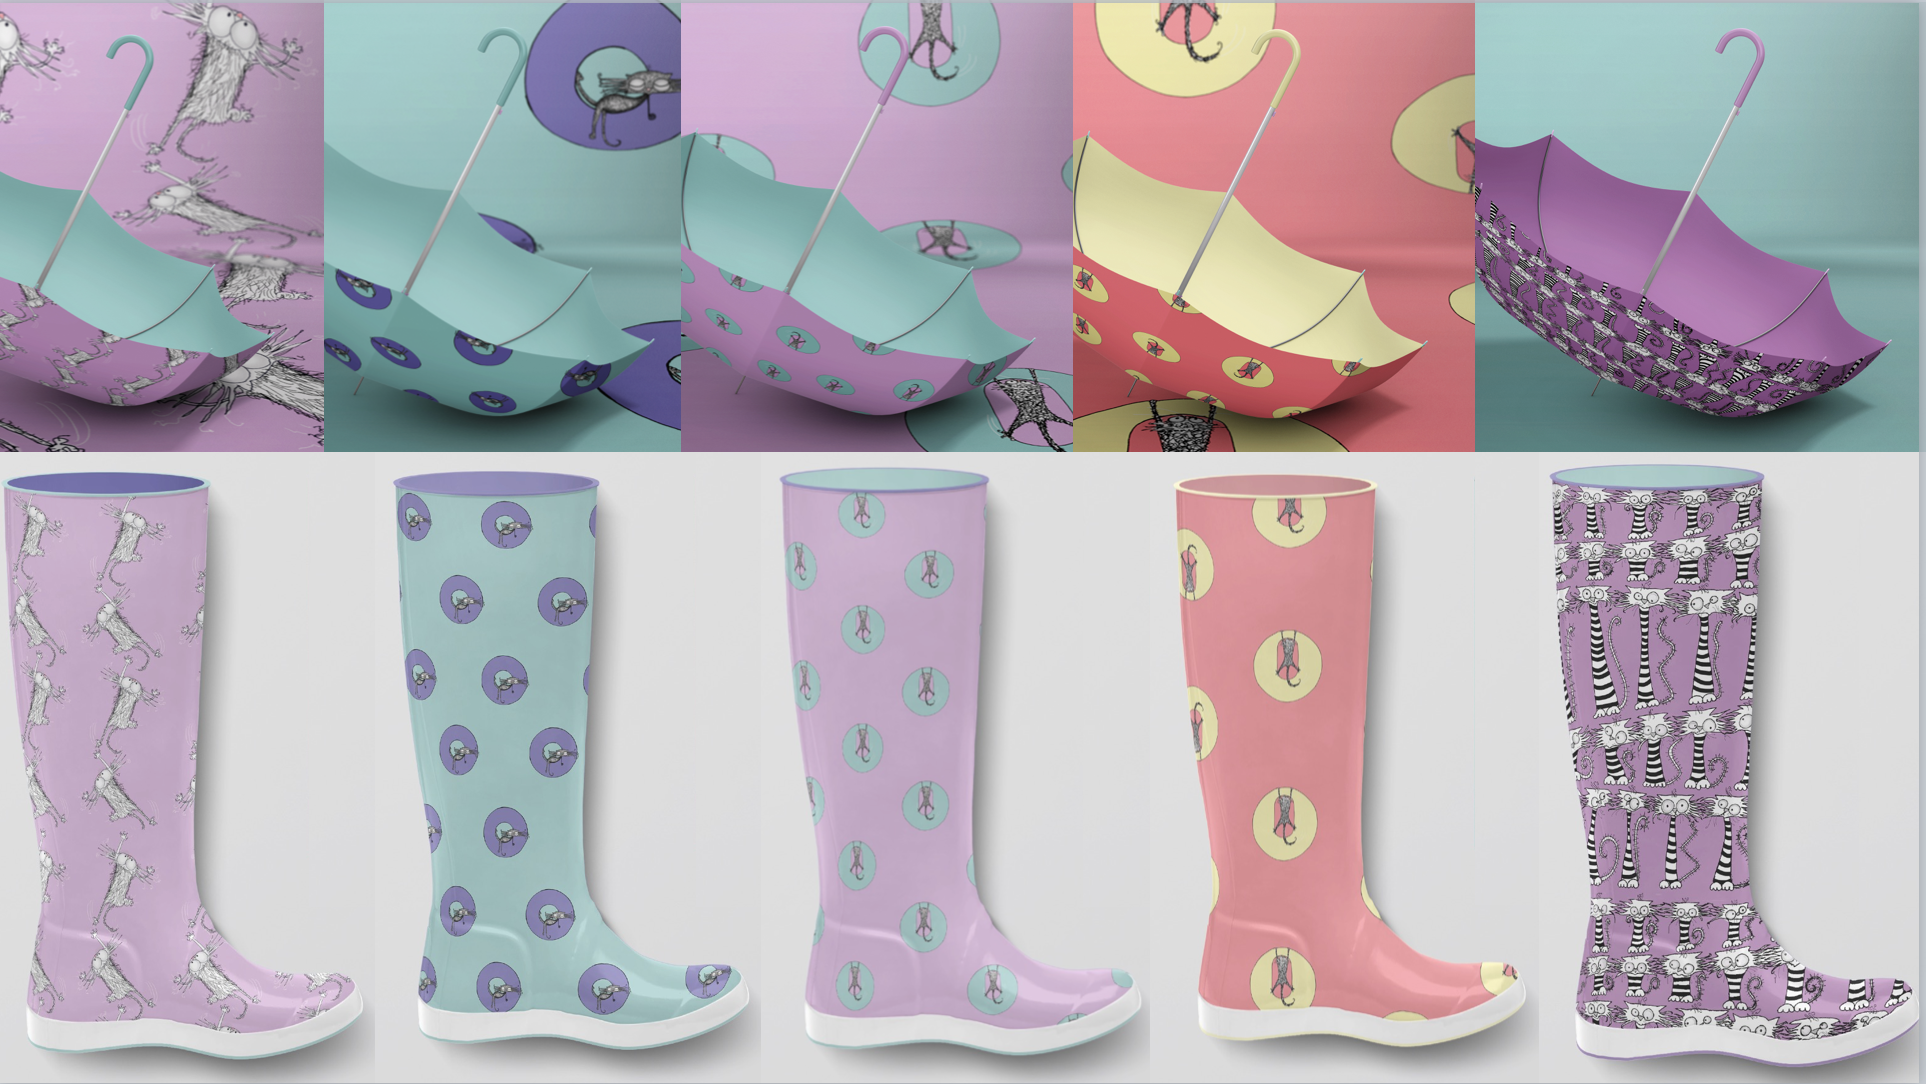 CAT DONT CARE   WELLIES & UMBRELLAS NATALIE PALMER SUTTON   ILLUSTRATION   GIFTS FOR CRAZY CAT LOVERS